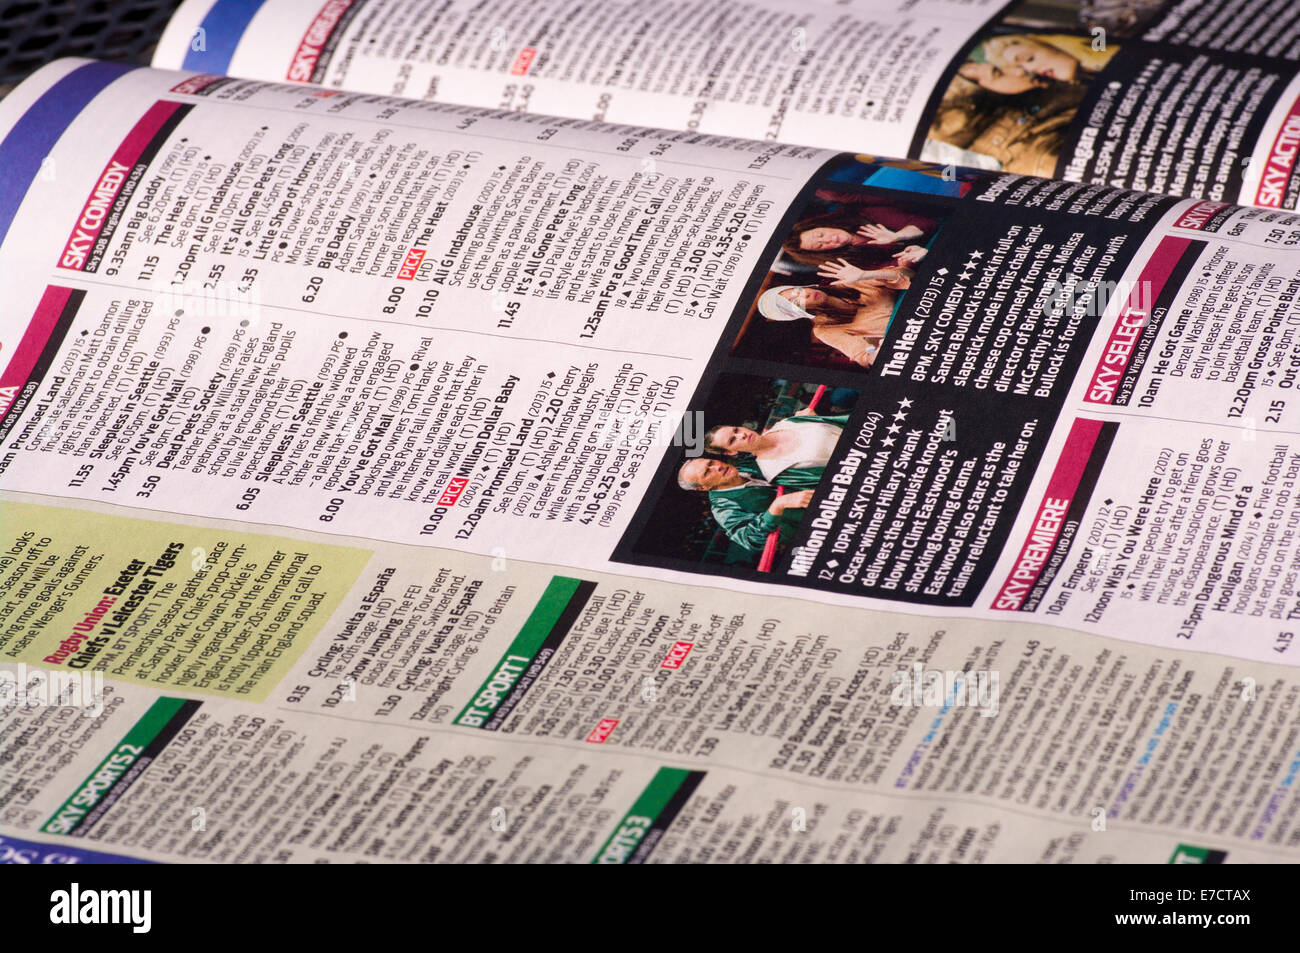 Television Listings TV Listing Guide Magazine - Stock Image